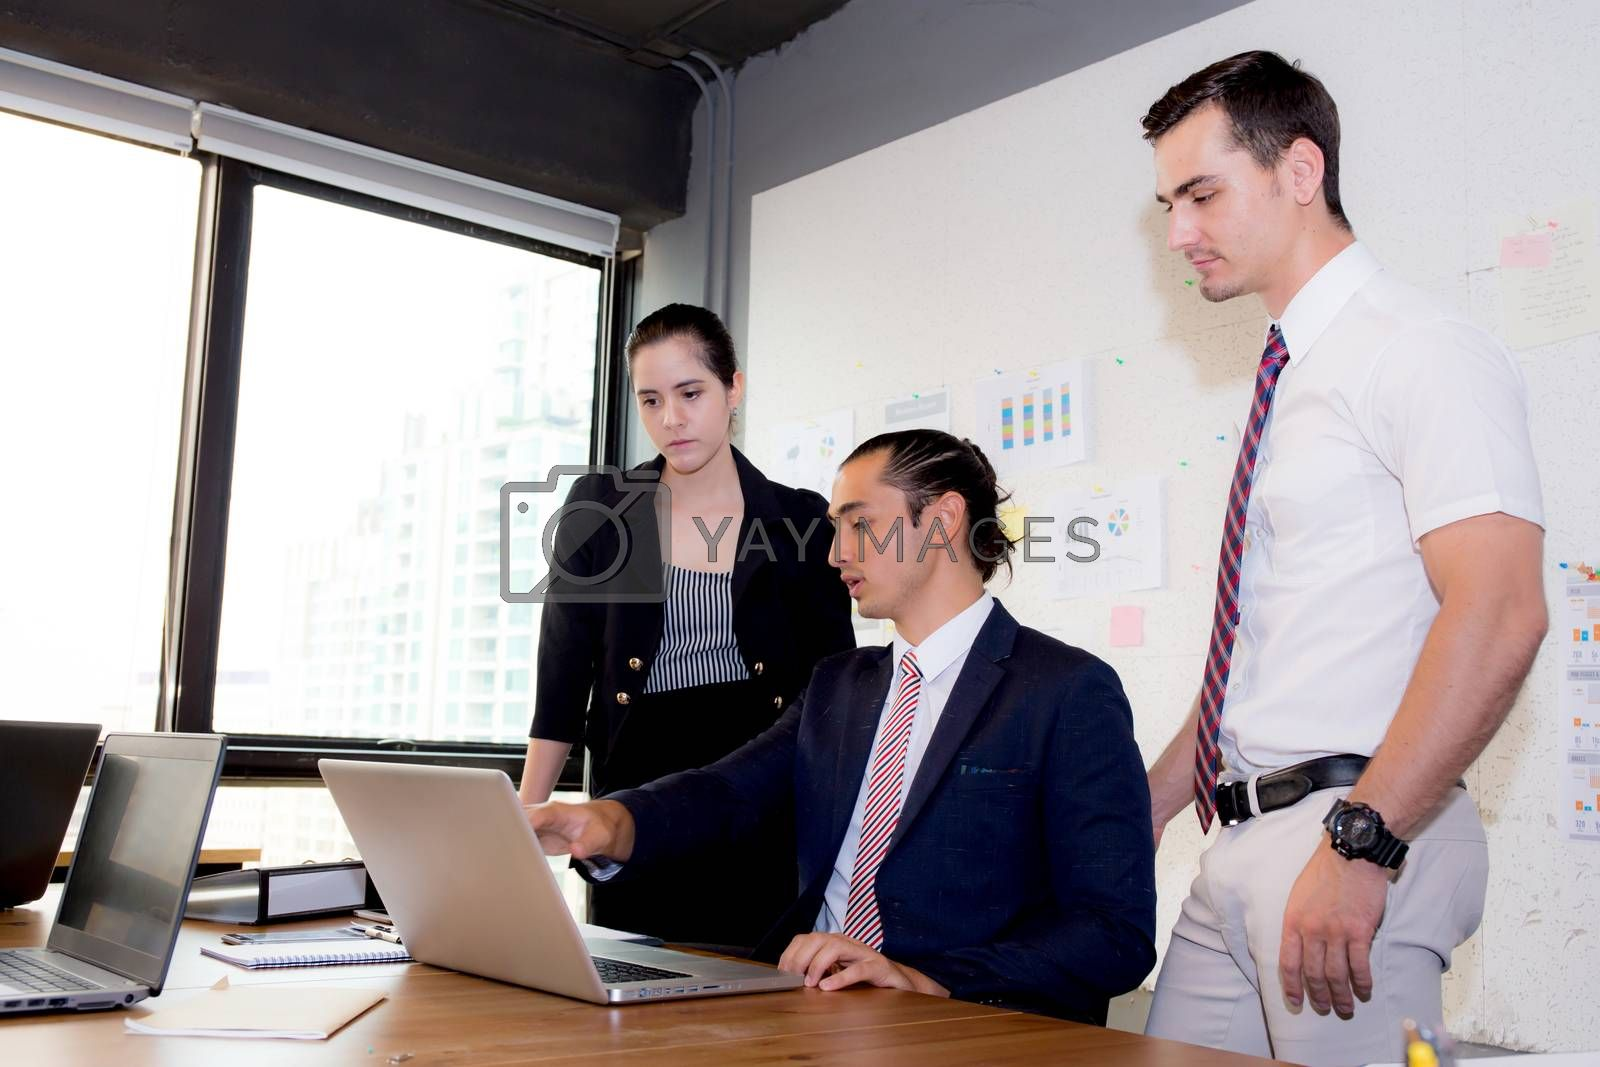 American people business team having using laptop during a meeting and presents.